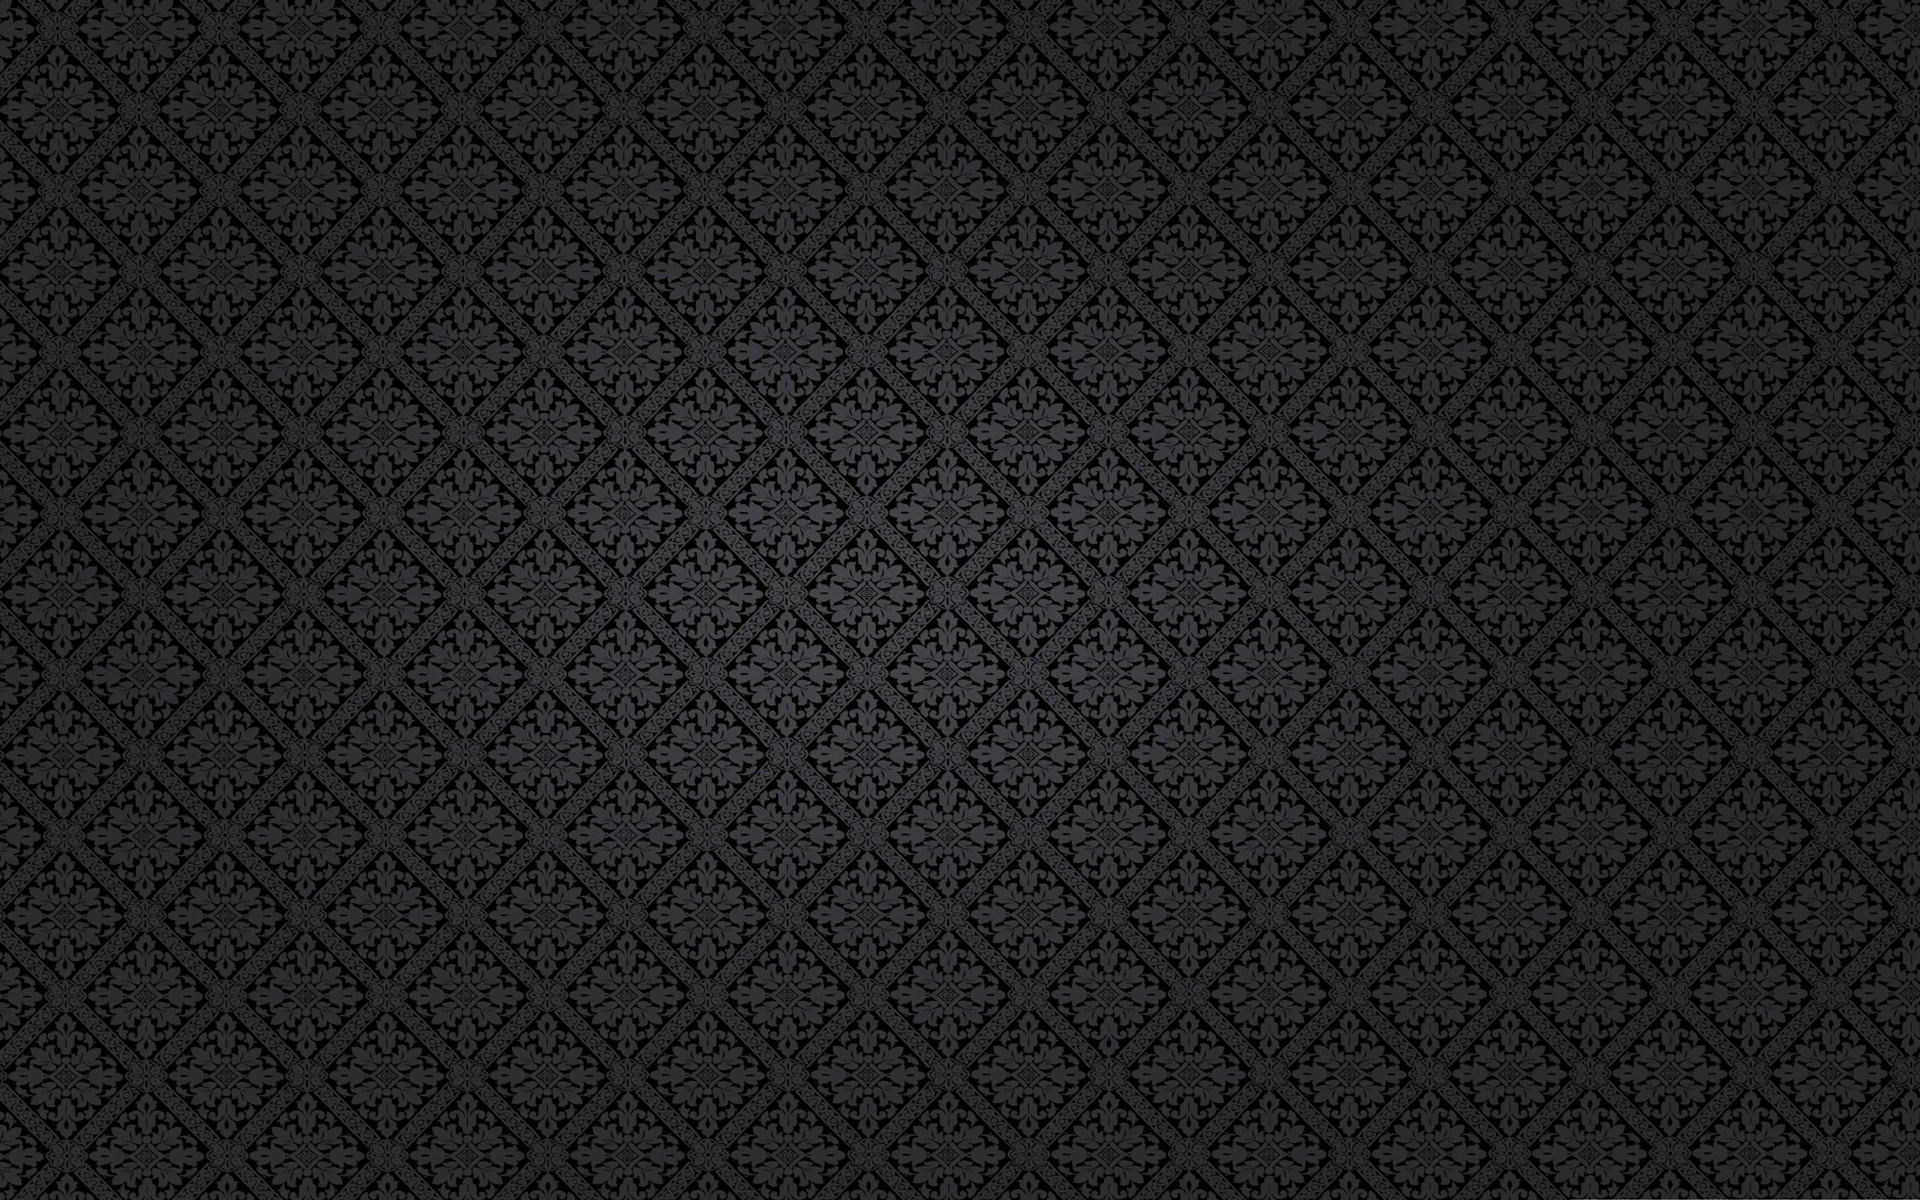 White and black wallpaper designs 17 background for Black and white wallpaper designs